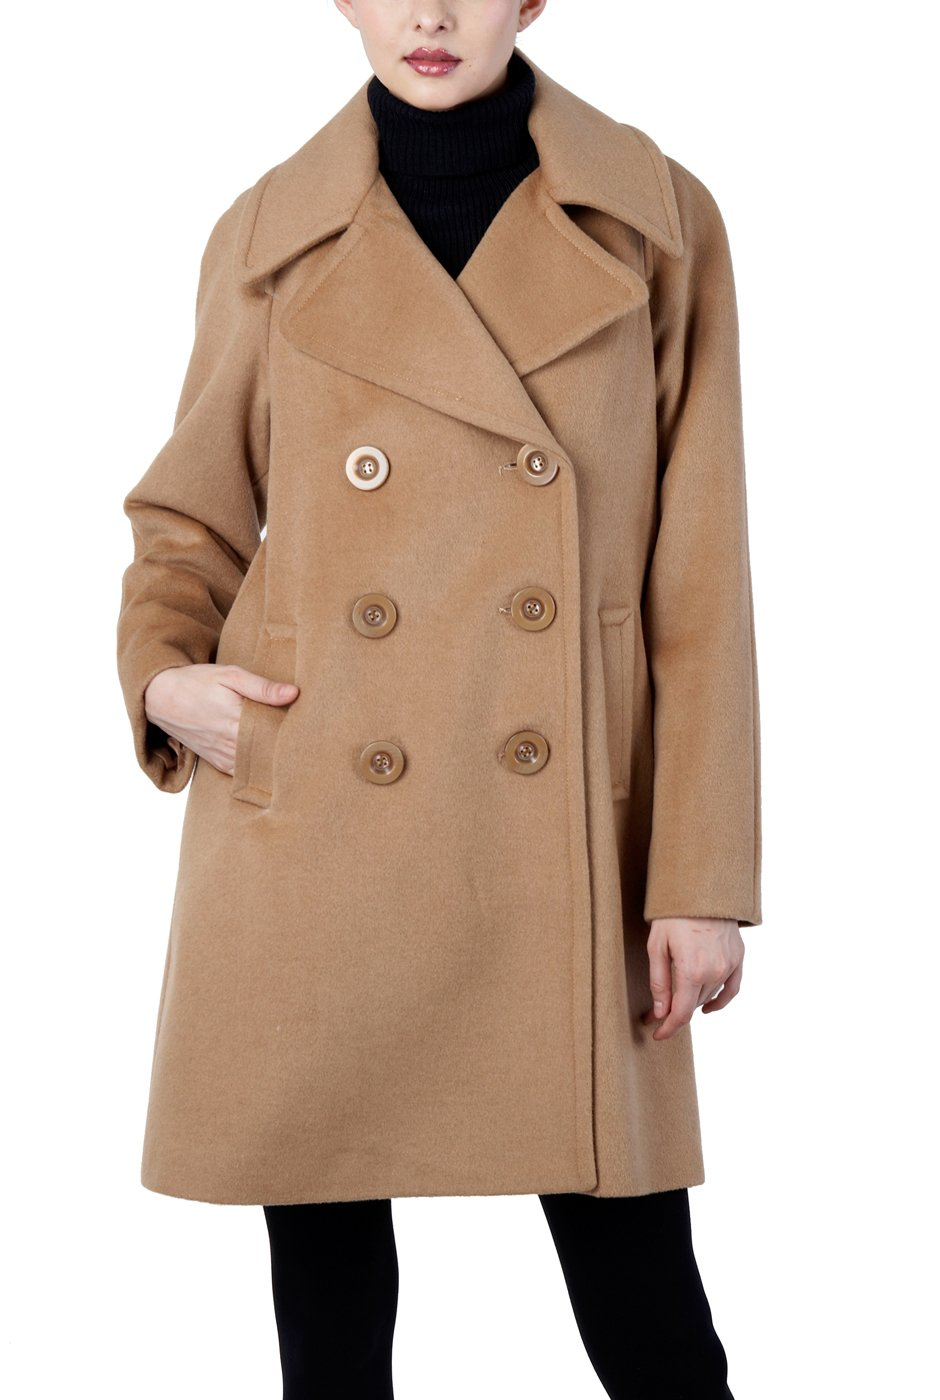 Phistic Women's Double Breasted Wool Blend Pea Coat